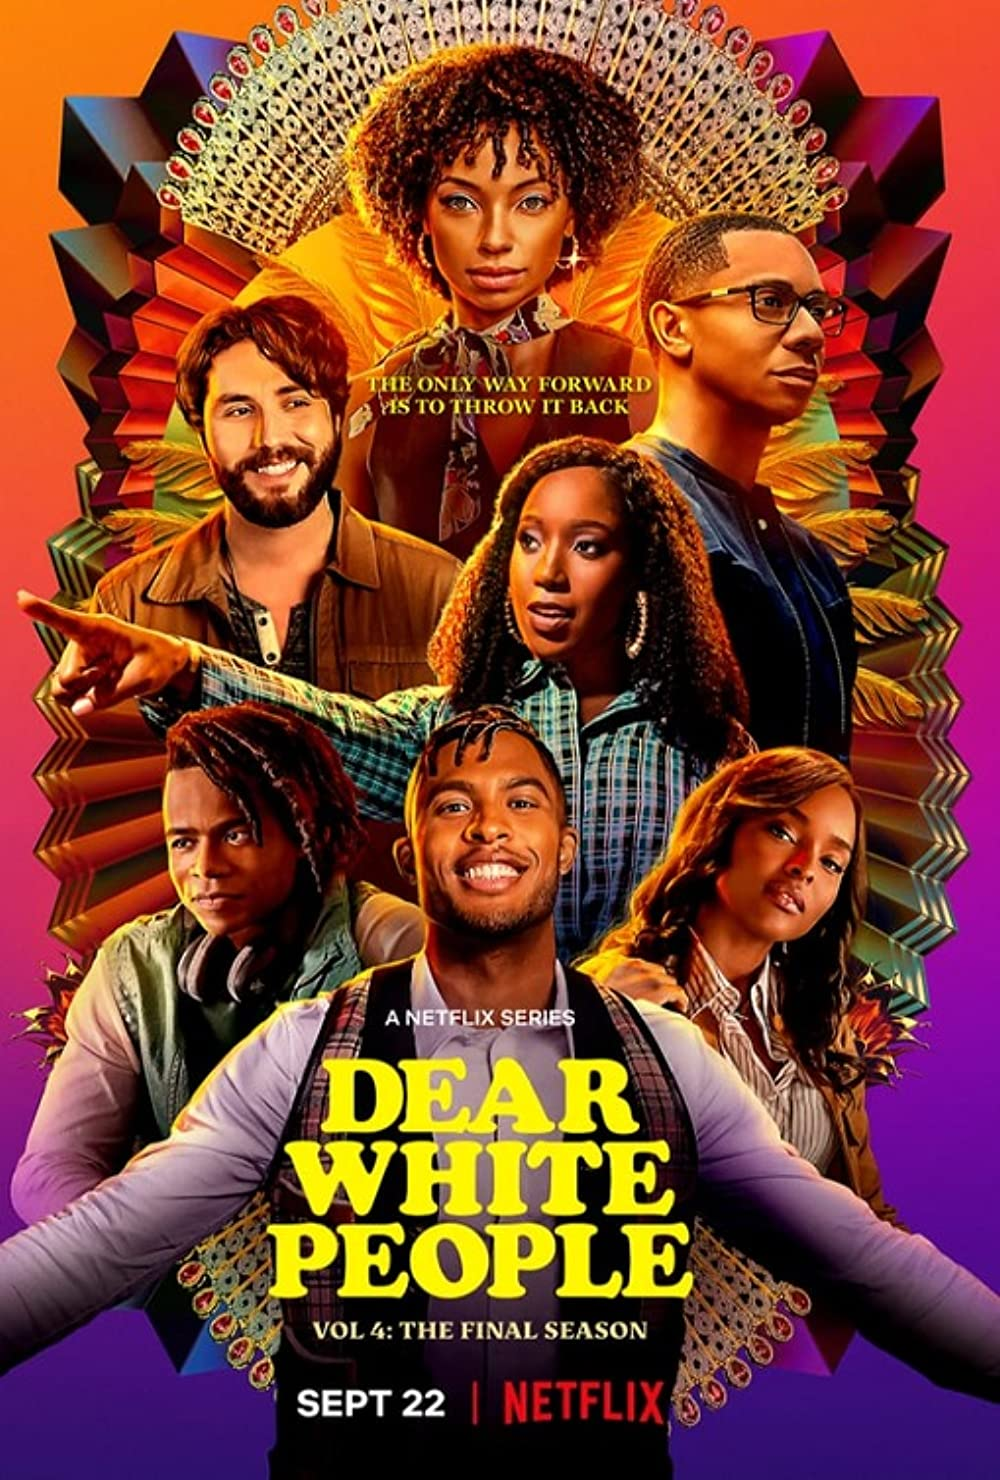 Dear White People Volume 4: Release Date, Trailer, Cast and Latest Updates!